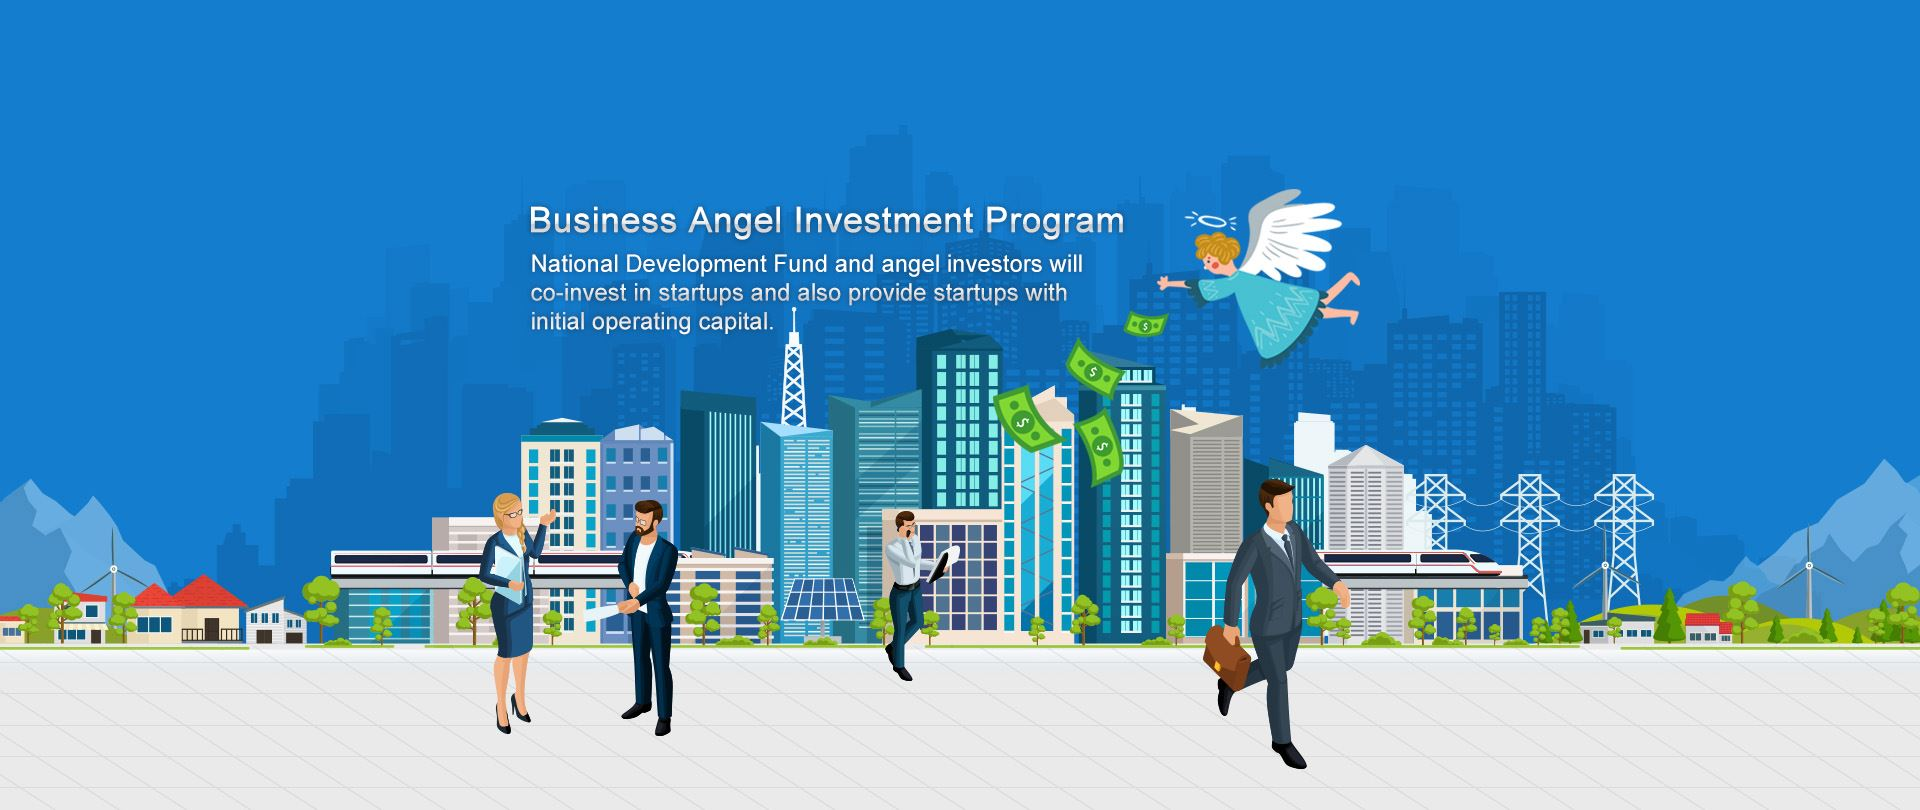 National Development Fund and angel investors will co-invest in startups and also provide startups with initial operating capital.